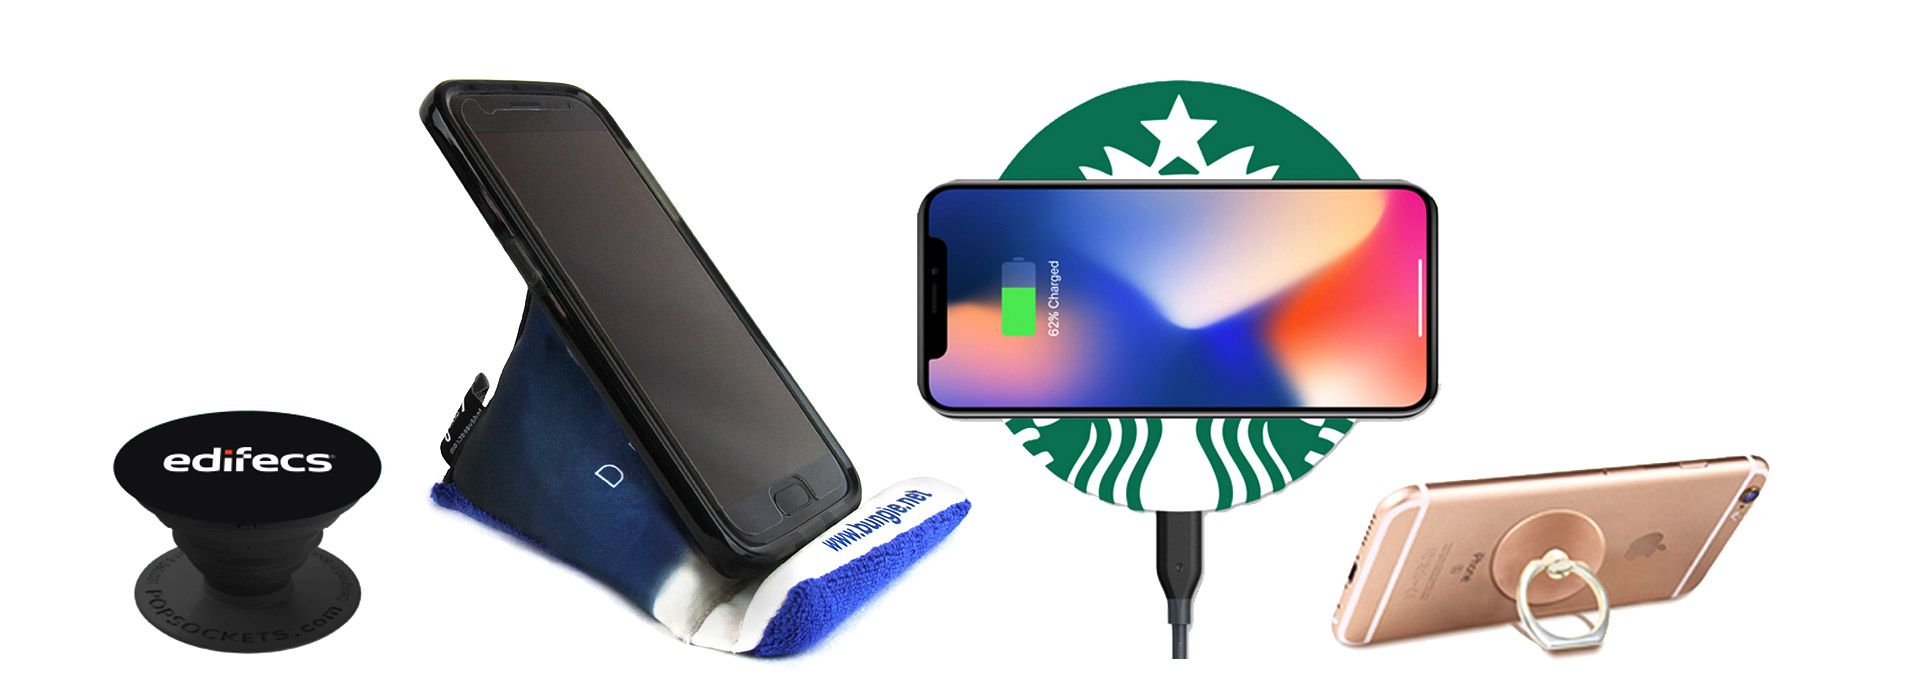 Custom Printed Promotional Cell Phone Accessories Seattle